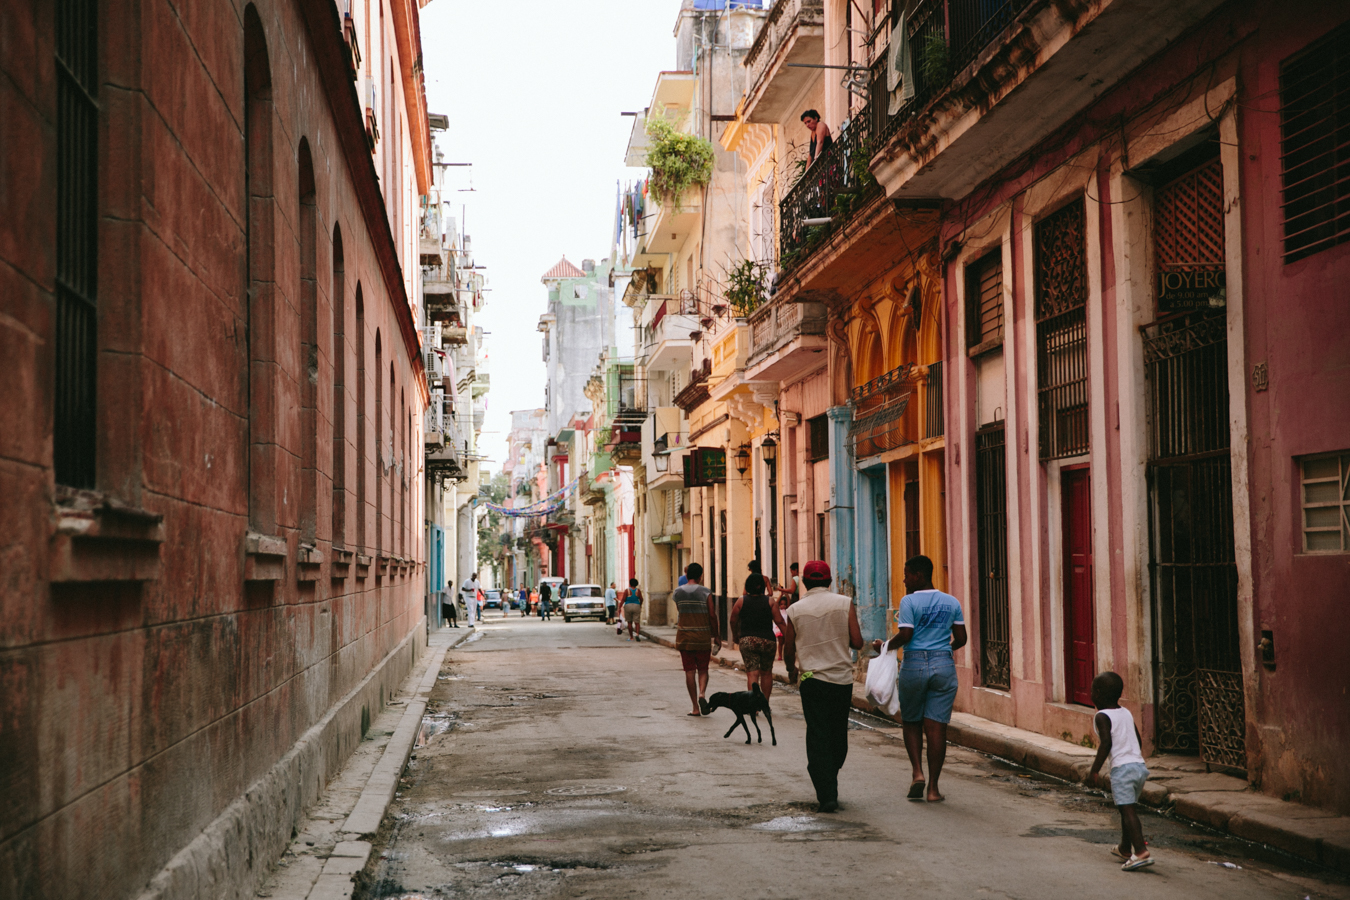 Because Cuba Is Changing A Lot Right Now And You Wanna See It While It Is  Still This Way: